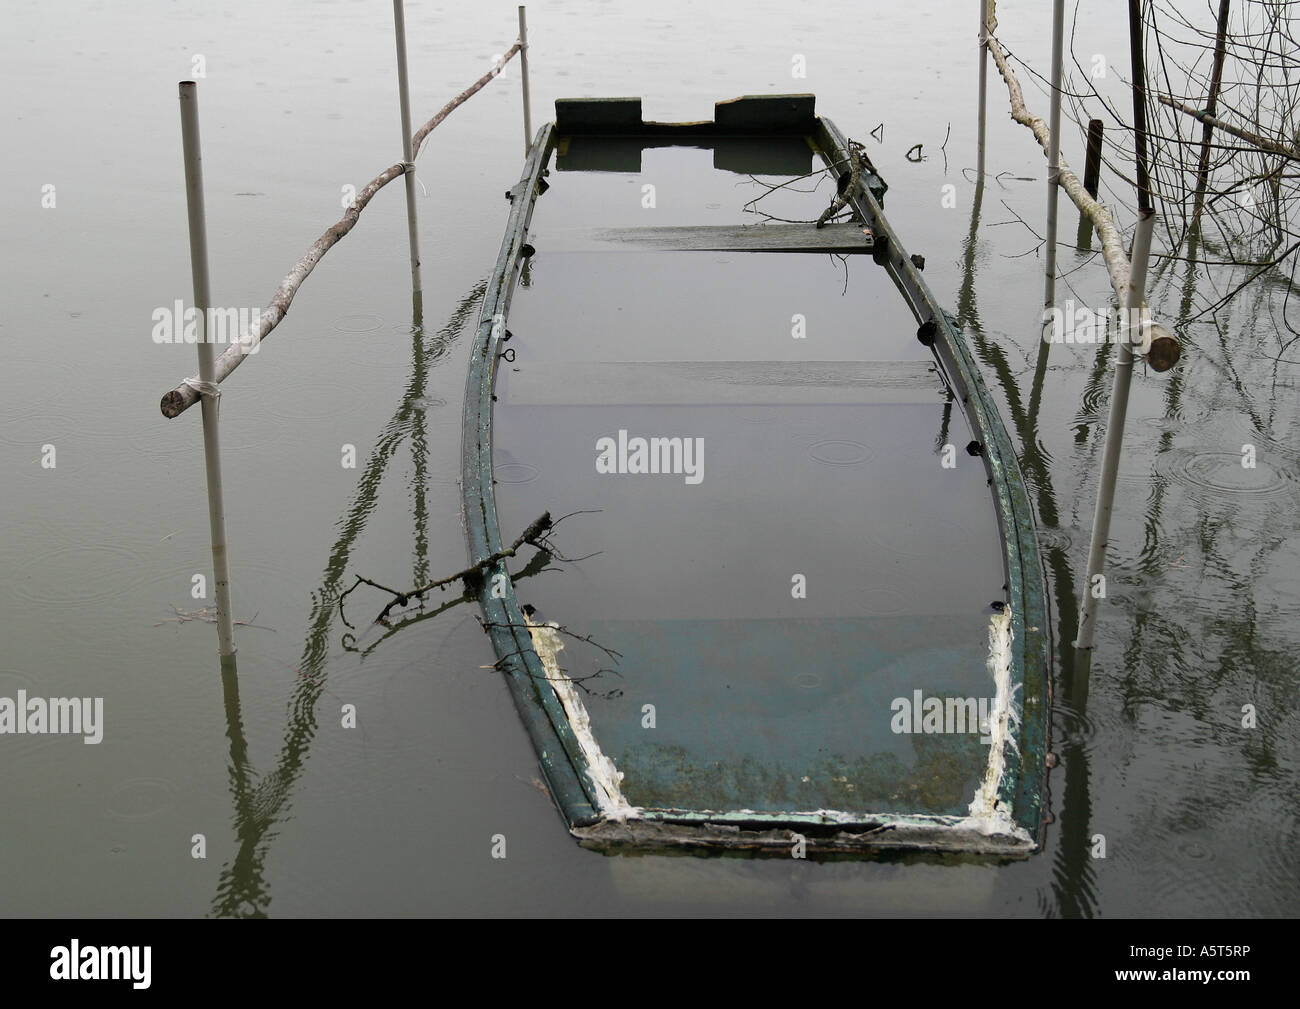 Sunken rowboat in shallow water - Stock Image